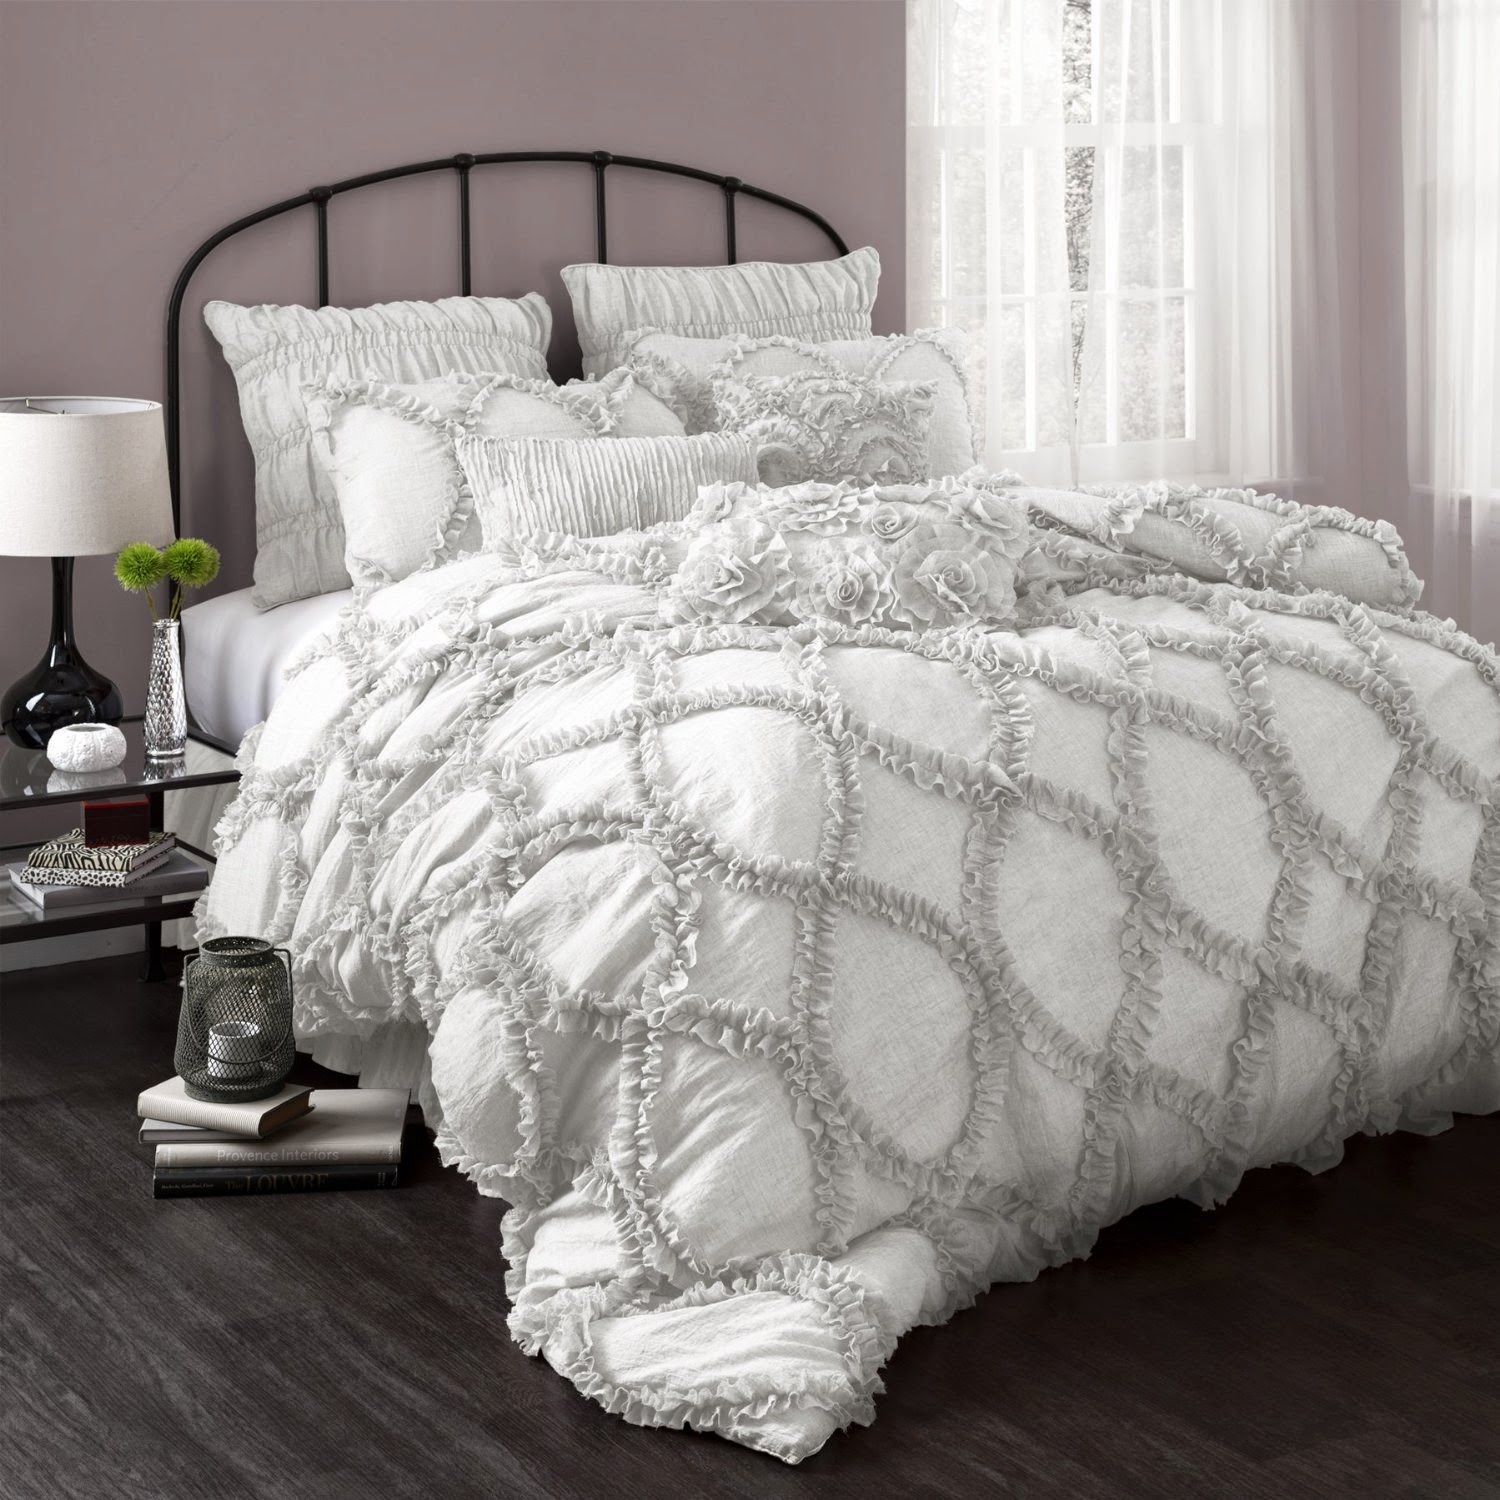 Image of: Chic Home Design Bedding